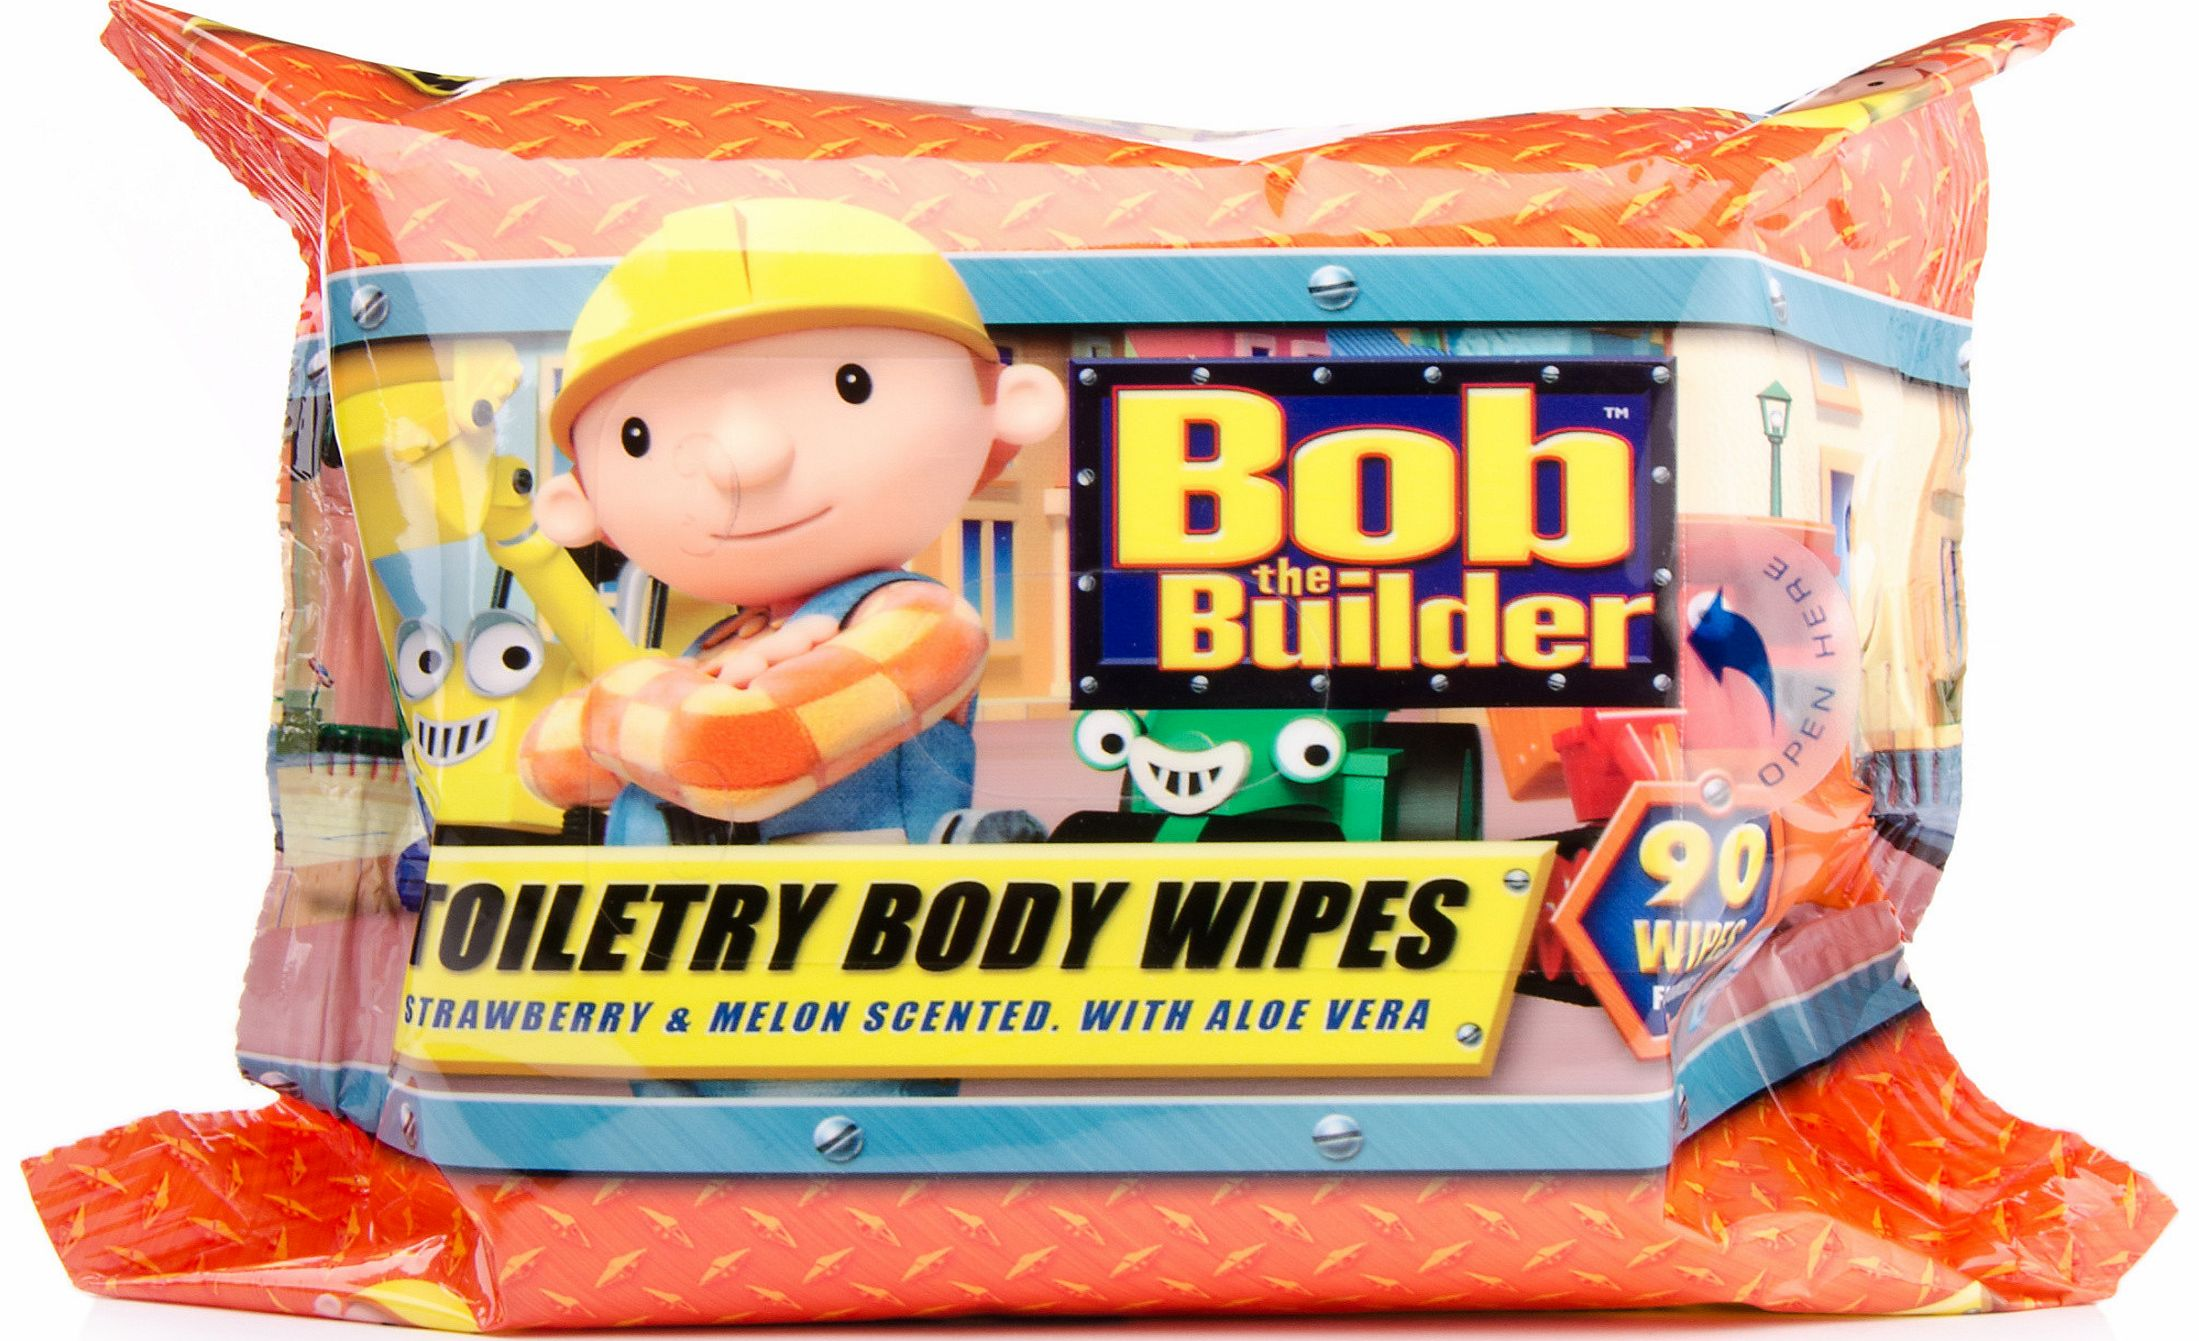 Toiletry Wipes